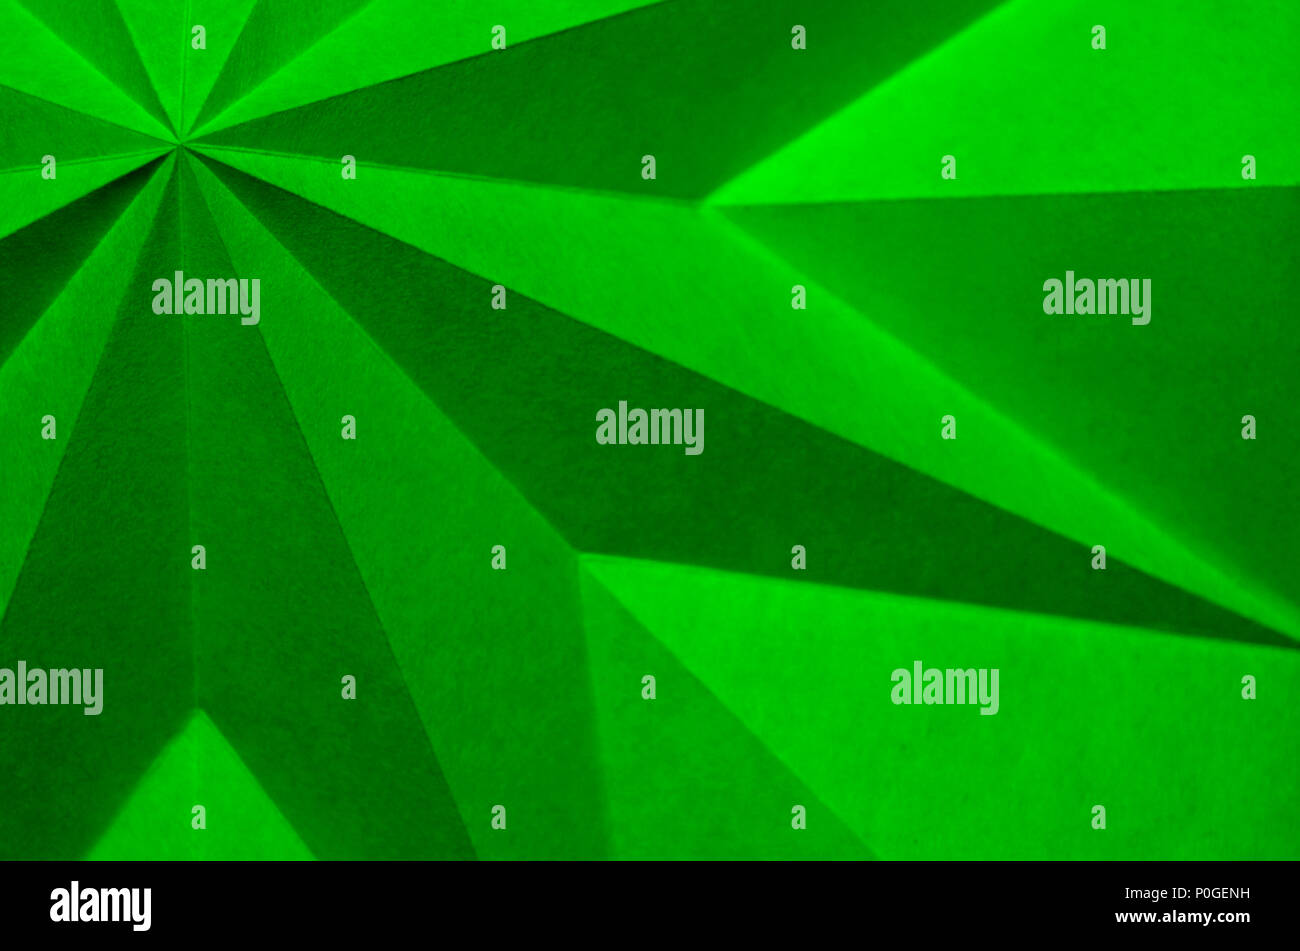 Green origami abstract Christmas wallpaper background. 100% green, no red no blue. Design element for holiday background. - Stock Image